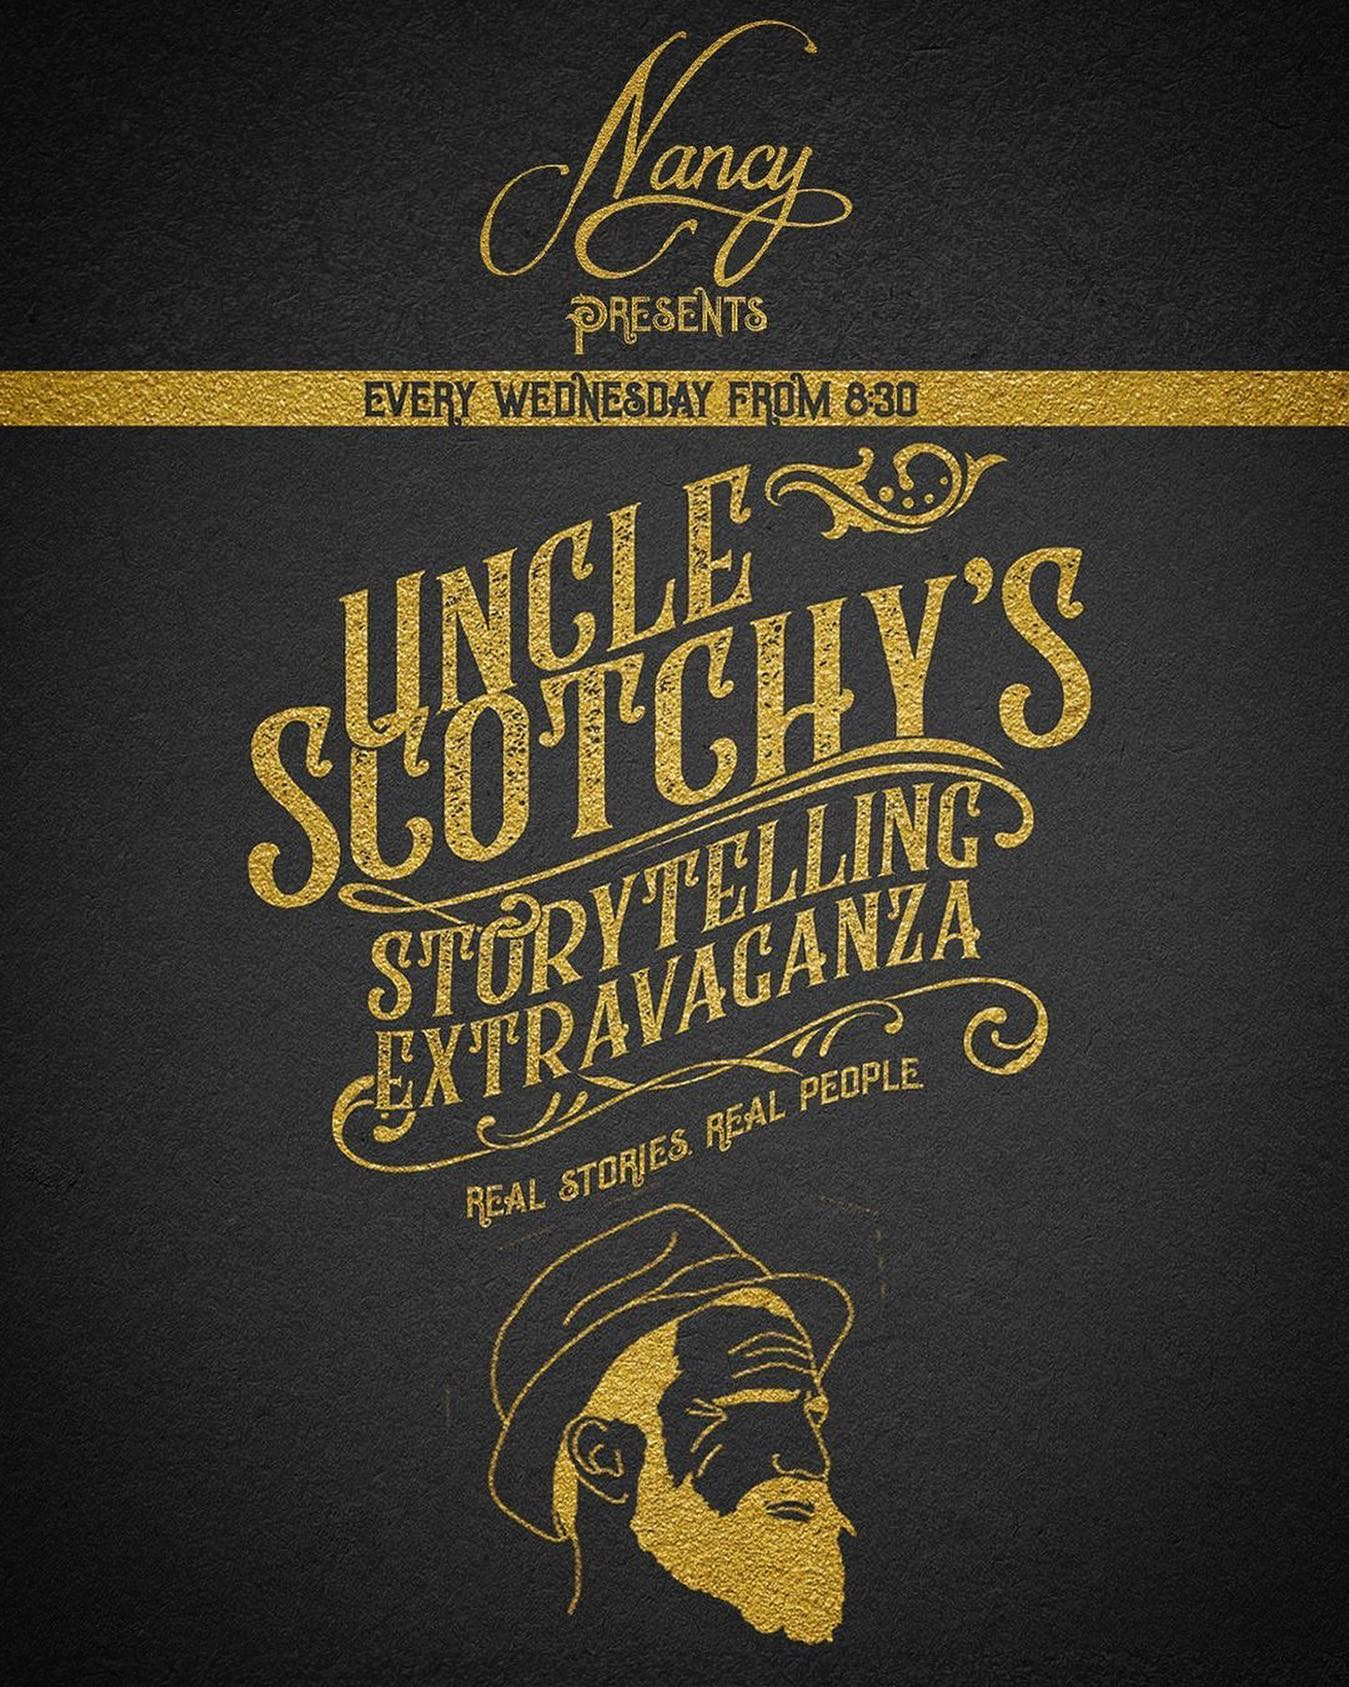 Uncle Scotchy's Storytelling at Bar Nancy Every Wednesday at 8:30pm